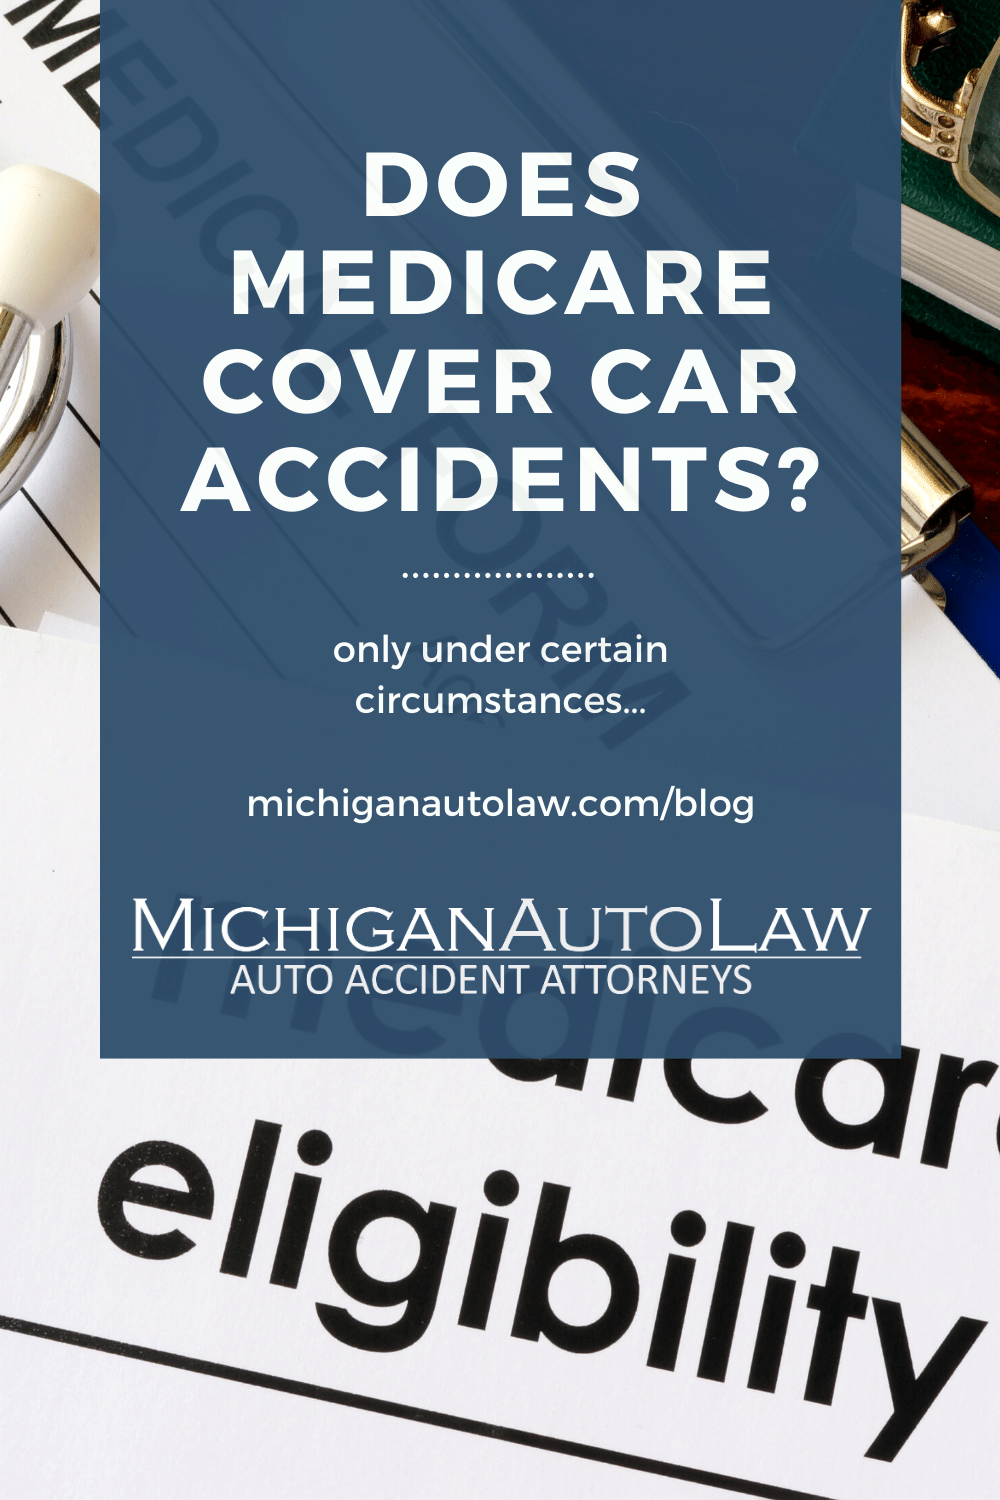 Does Medicare Cover Auto Accident Injuries Under New Law?